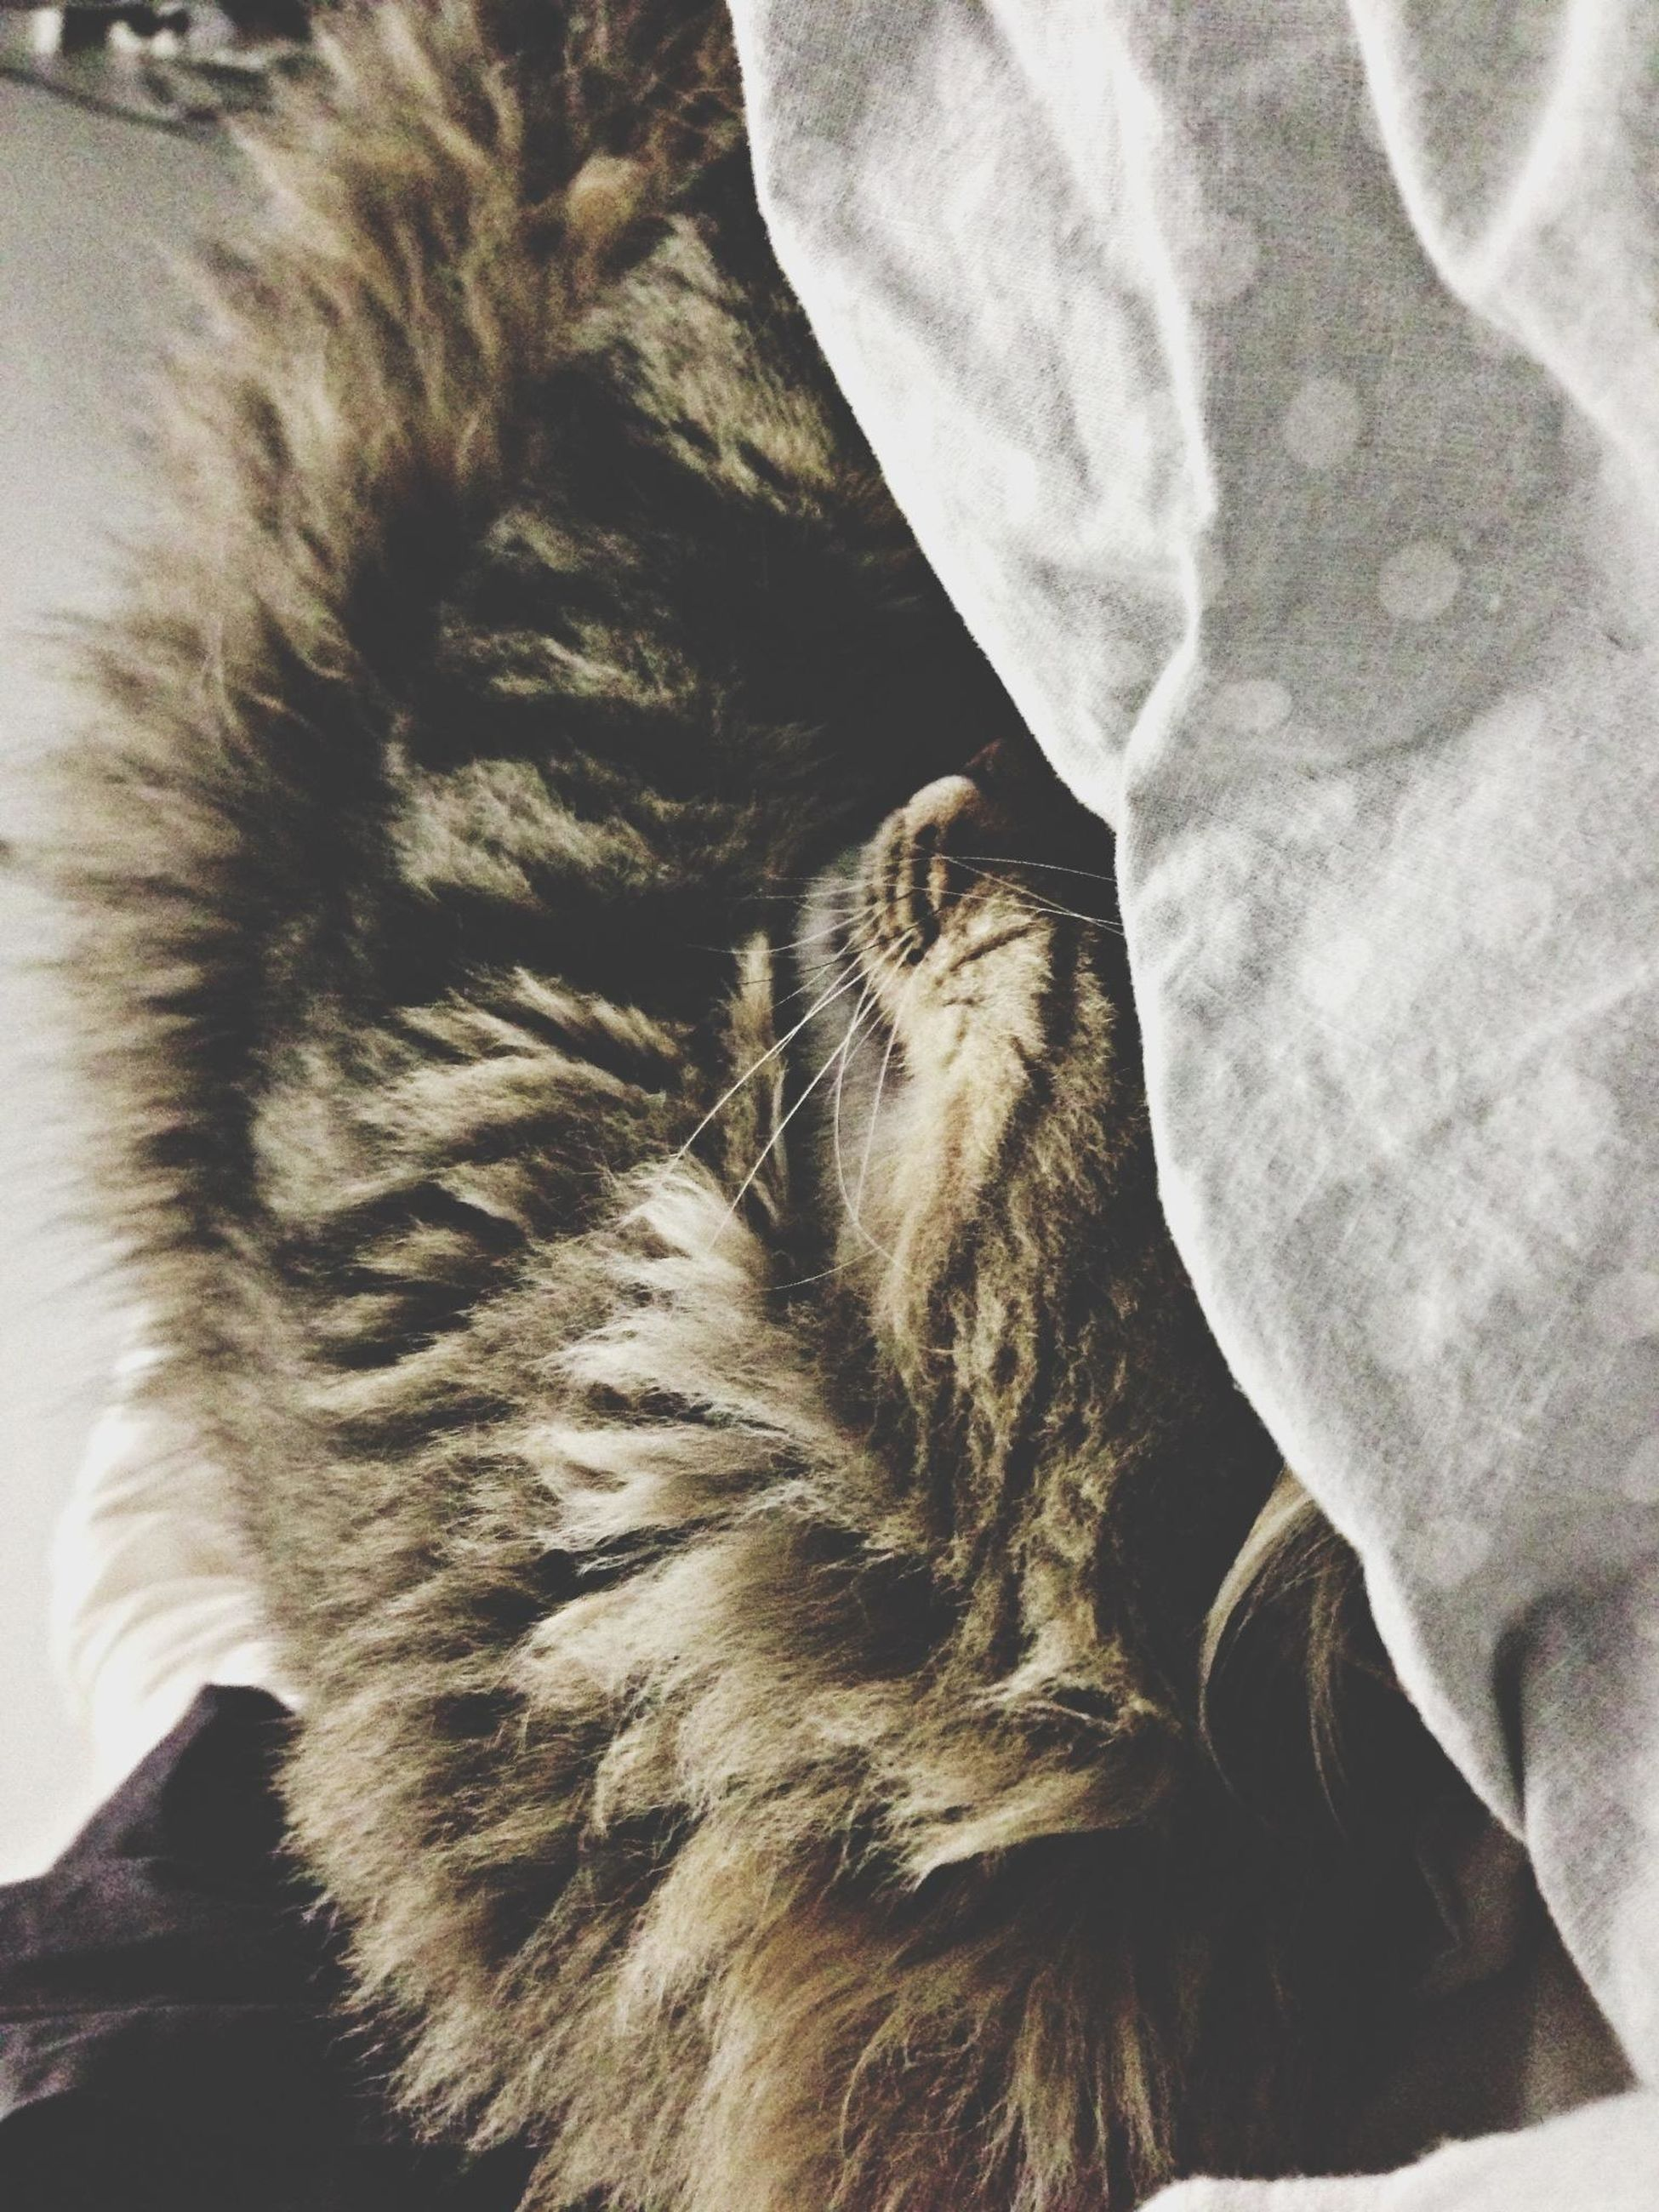 domestic cat, animal themes, cat, one animal, mammal, feline, pets, domestic animals, indoors, whisker, relaxation, resting, high angle view, sleeping, close-up, lying down, animal head, animal body part, no people, part of